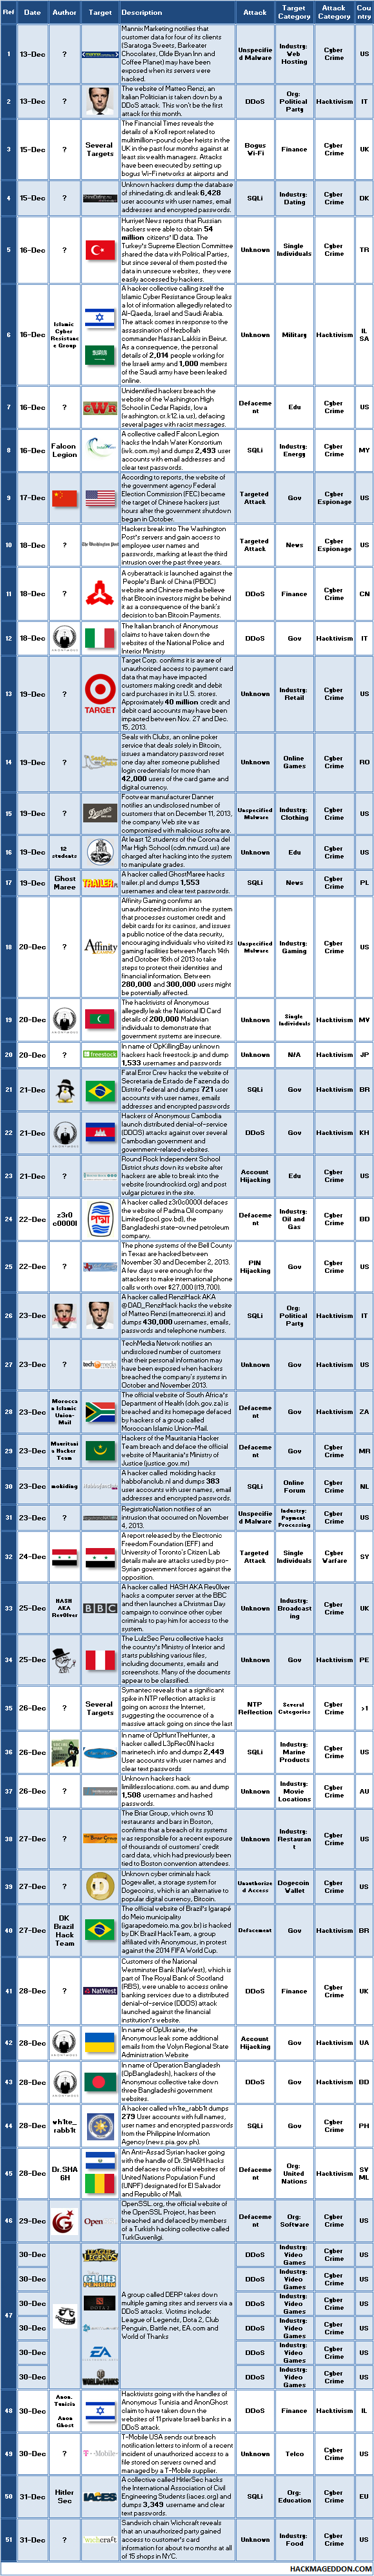 16-31 December 2013 Cyber Attacks Timeline Update2